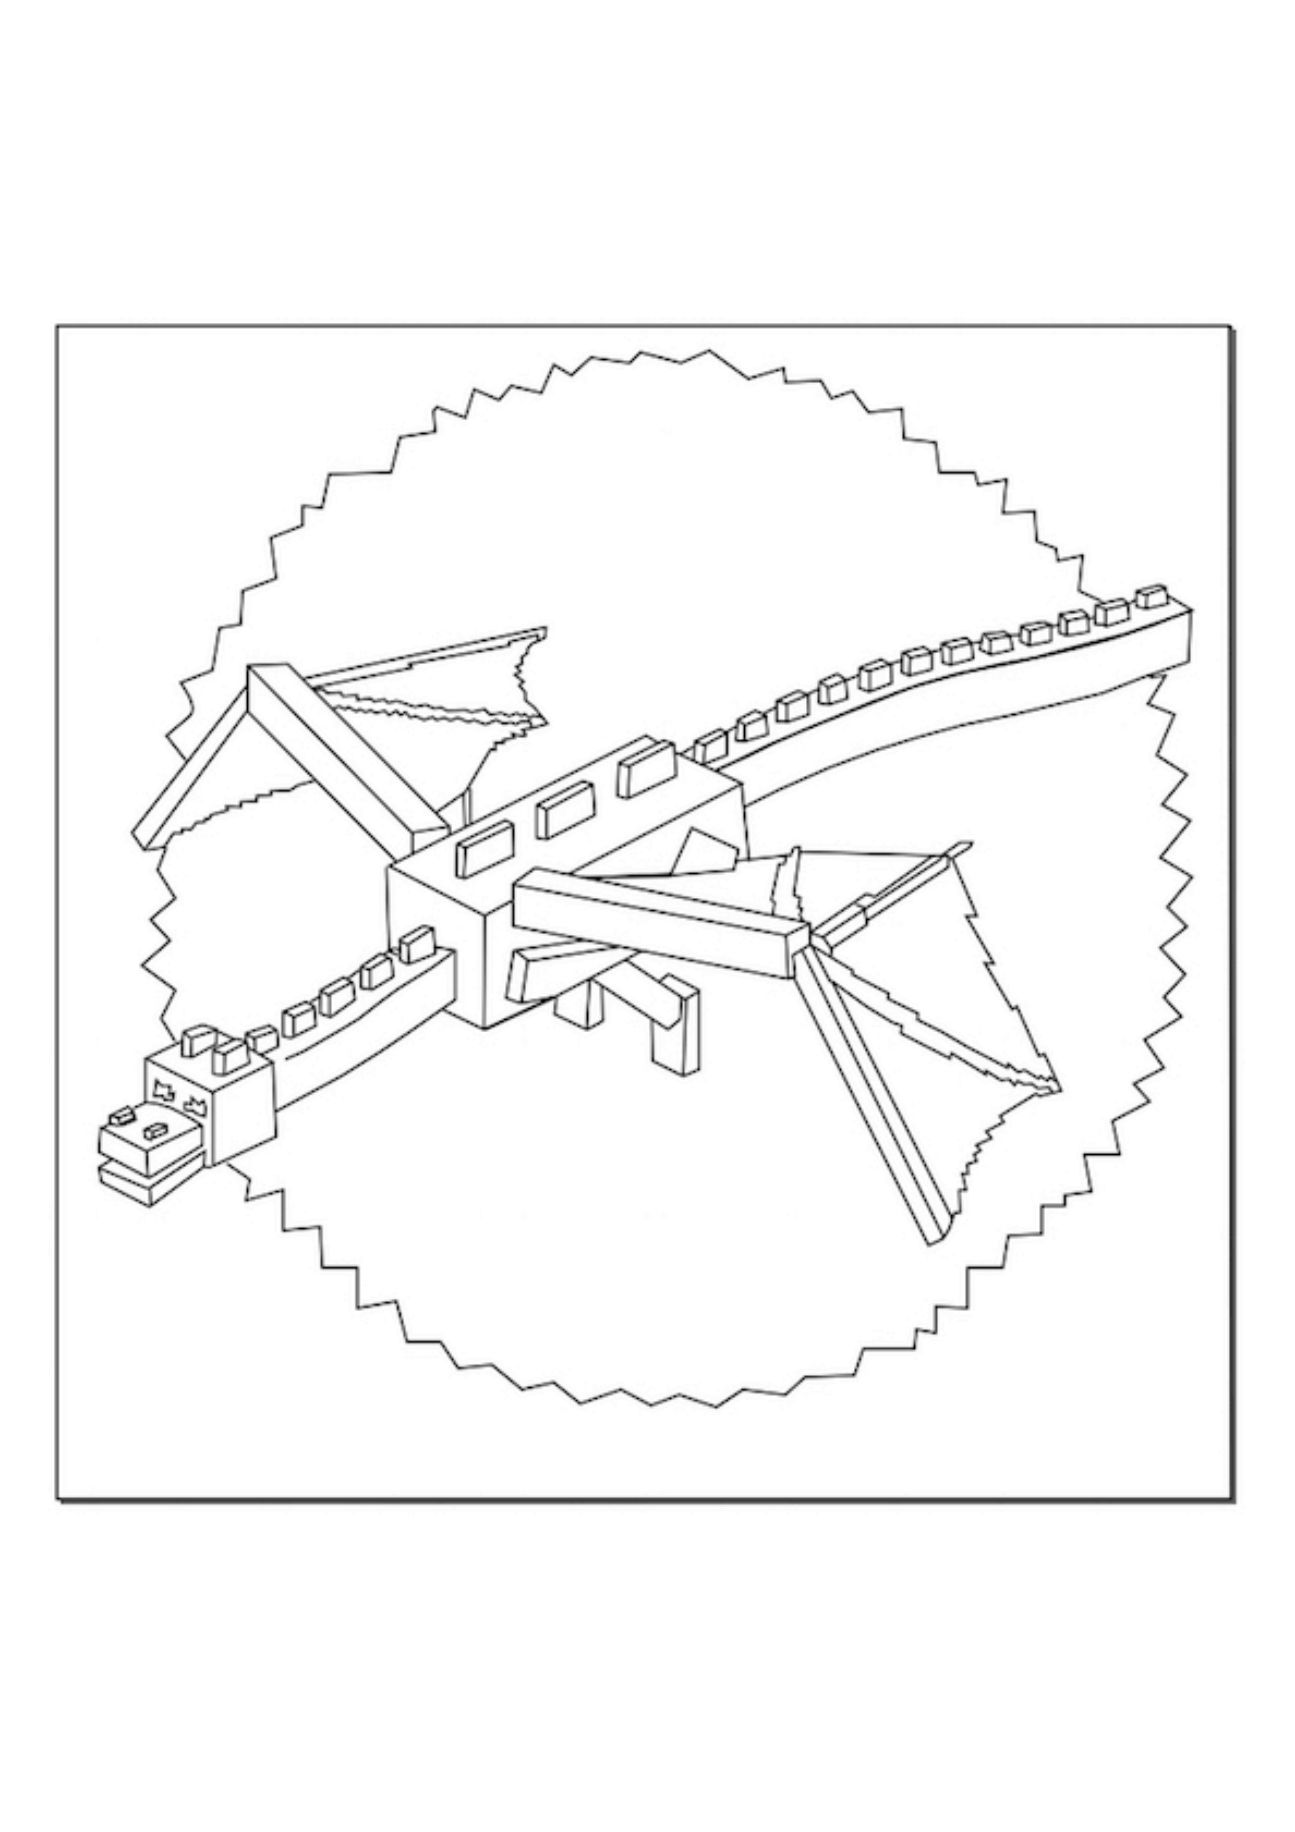 Minecraft Ender Dragon Kleurplaten.A Minecraft Ender Dragon Coloring Page Coloring Pages Minecraft